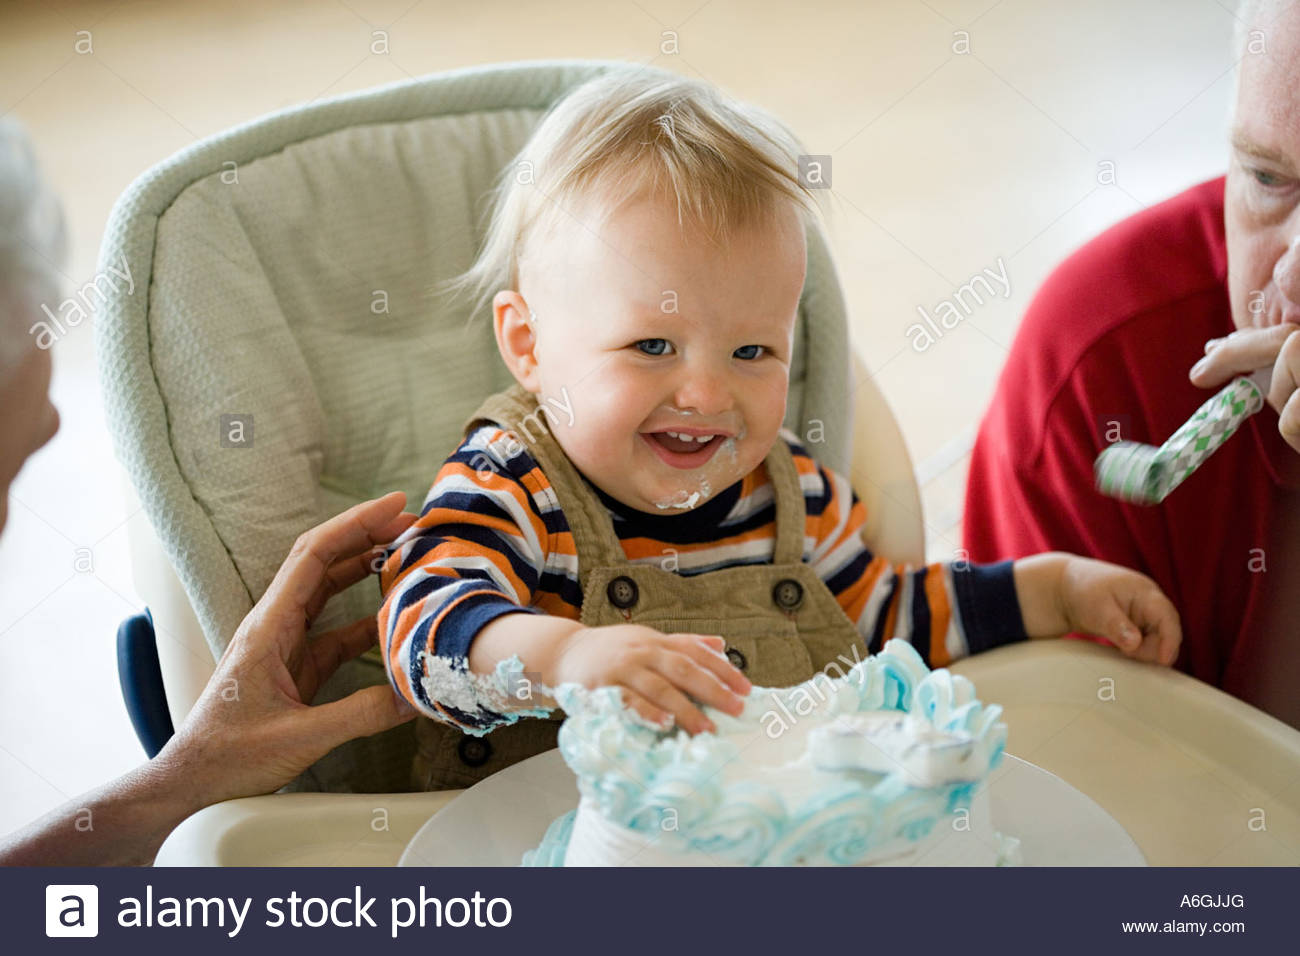 Messy one year old with birthday cake - Stock Image